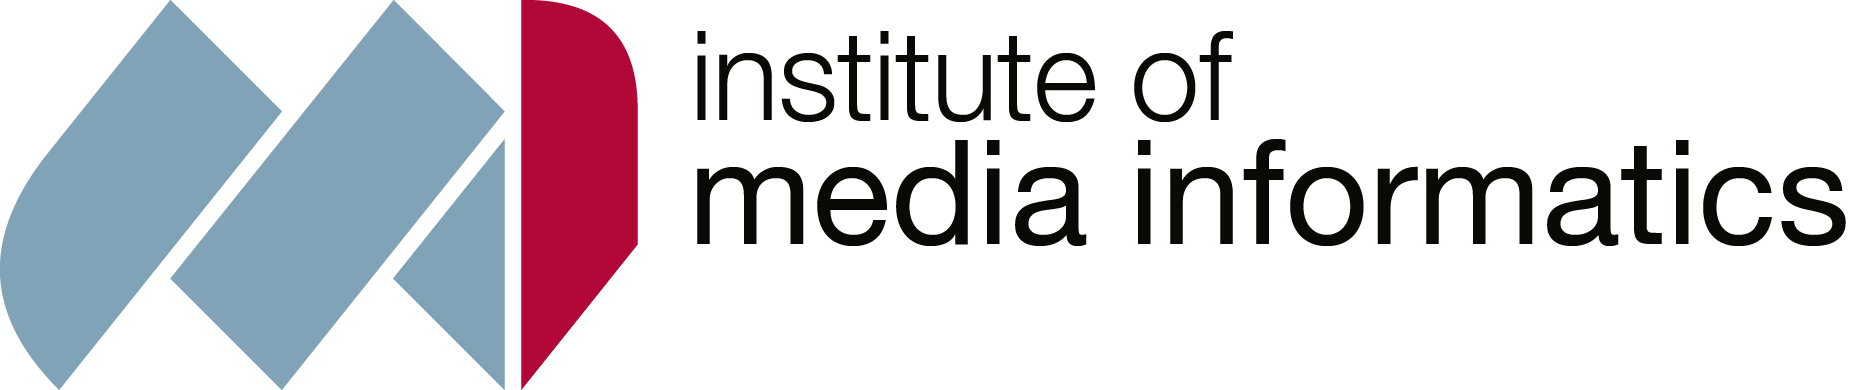 Logo - institute of media informatics, Ulm university